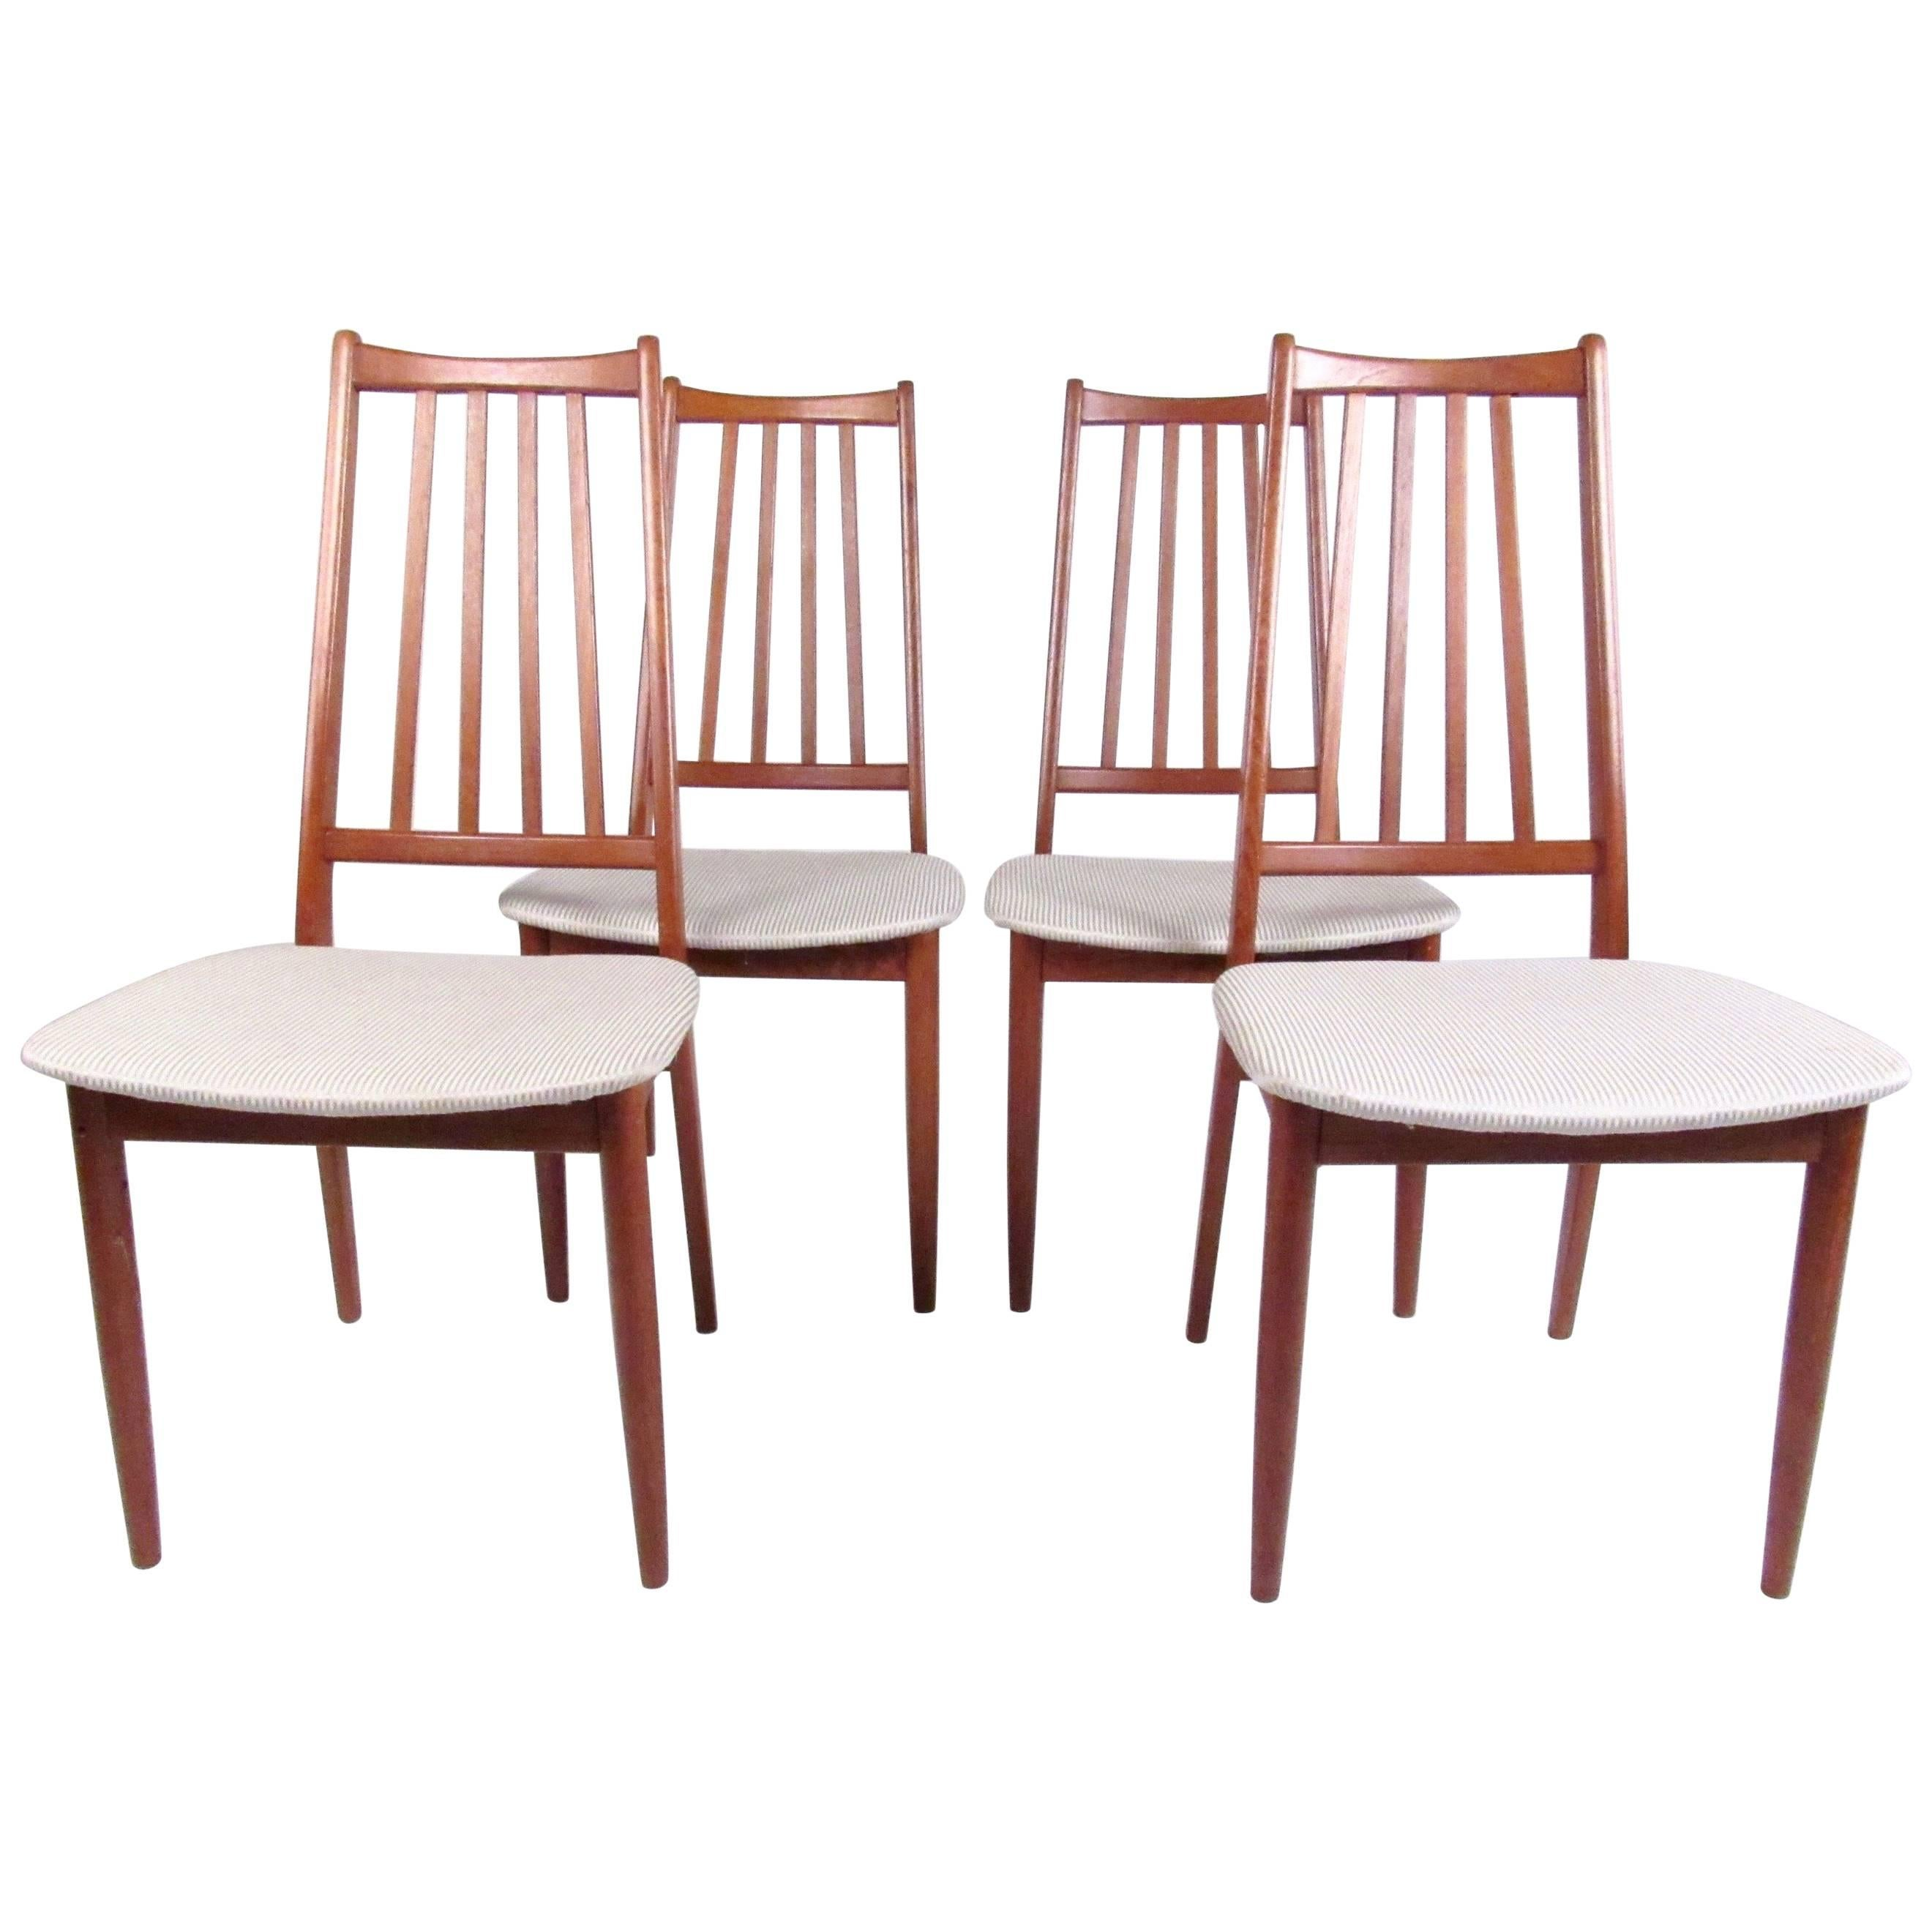 Set of Four Mid-Century Modern High Back Teak Dining Chairs